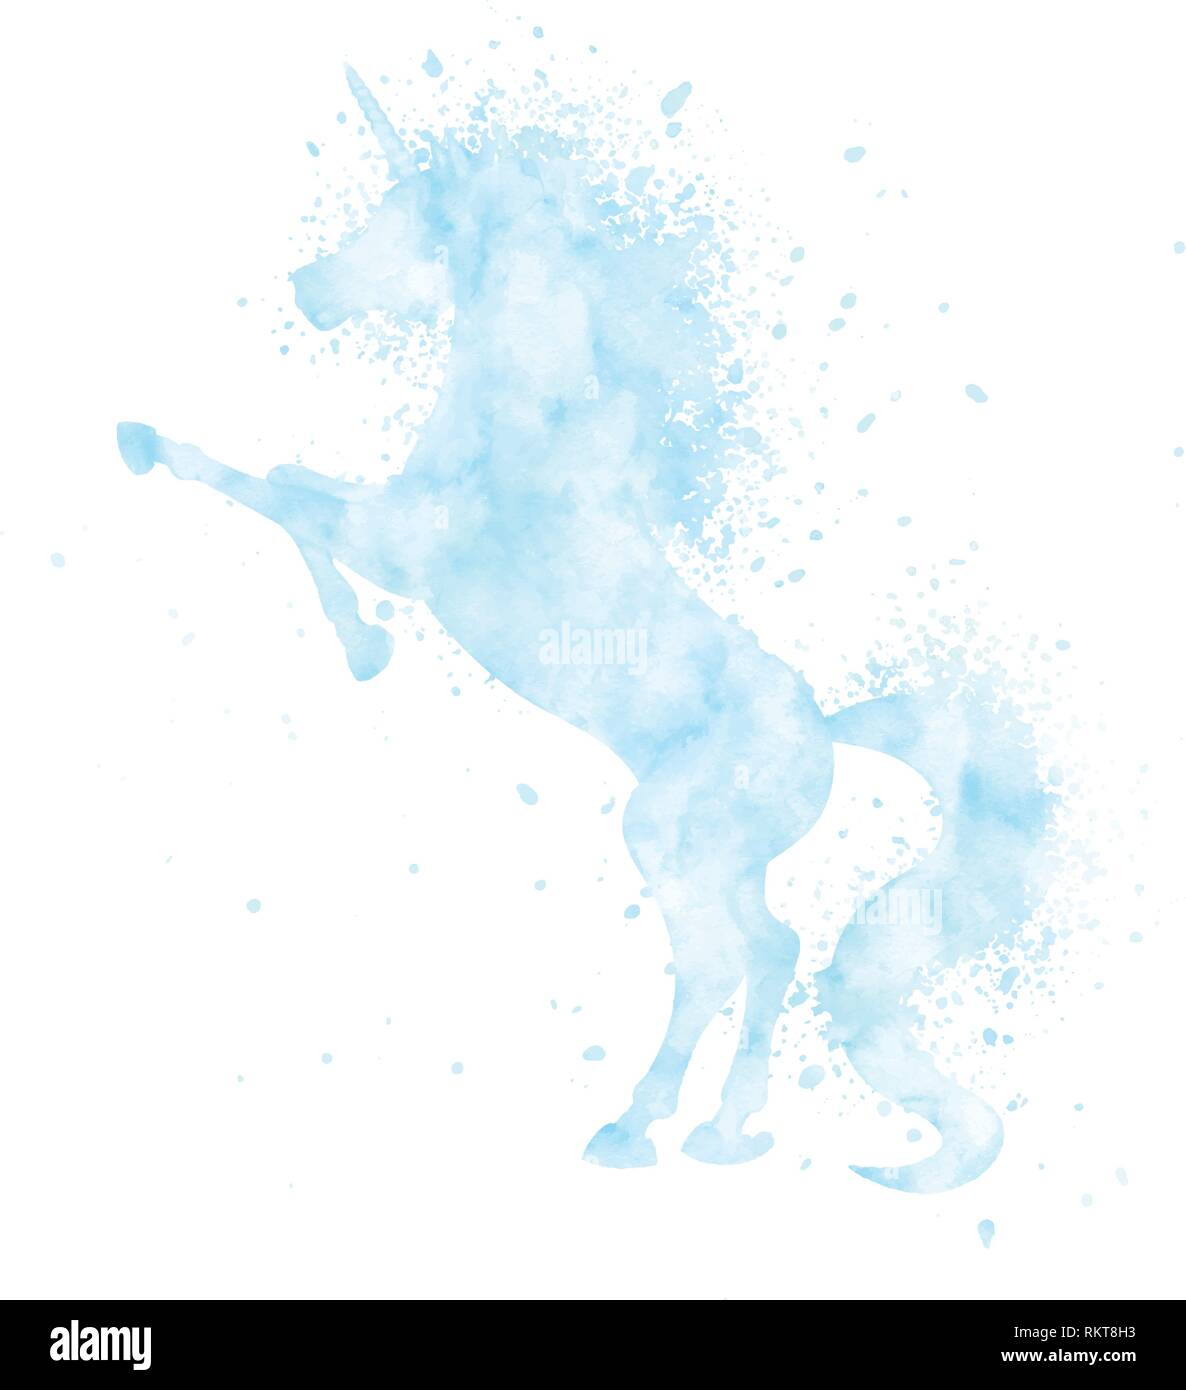 Watercolor Unicorn Silhouette Painting With Splatter Isolated On White Background Blue Magic Creature Vector Illustration Stock Vector Image Art Alamy